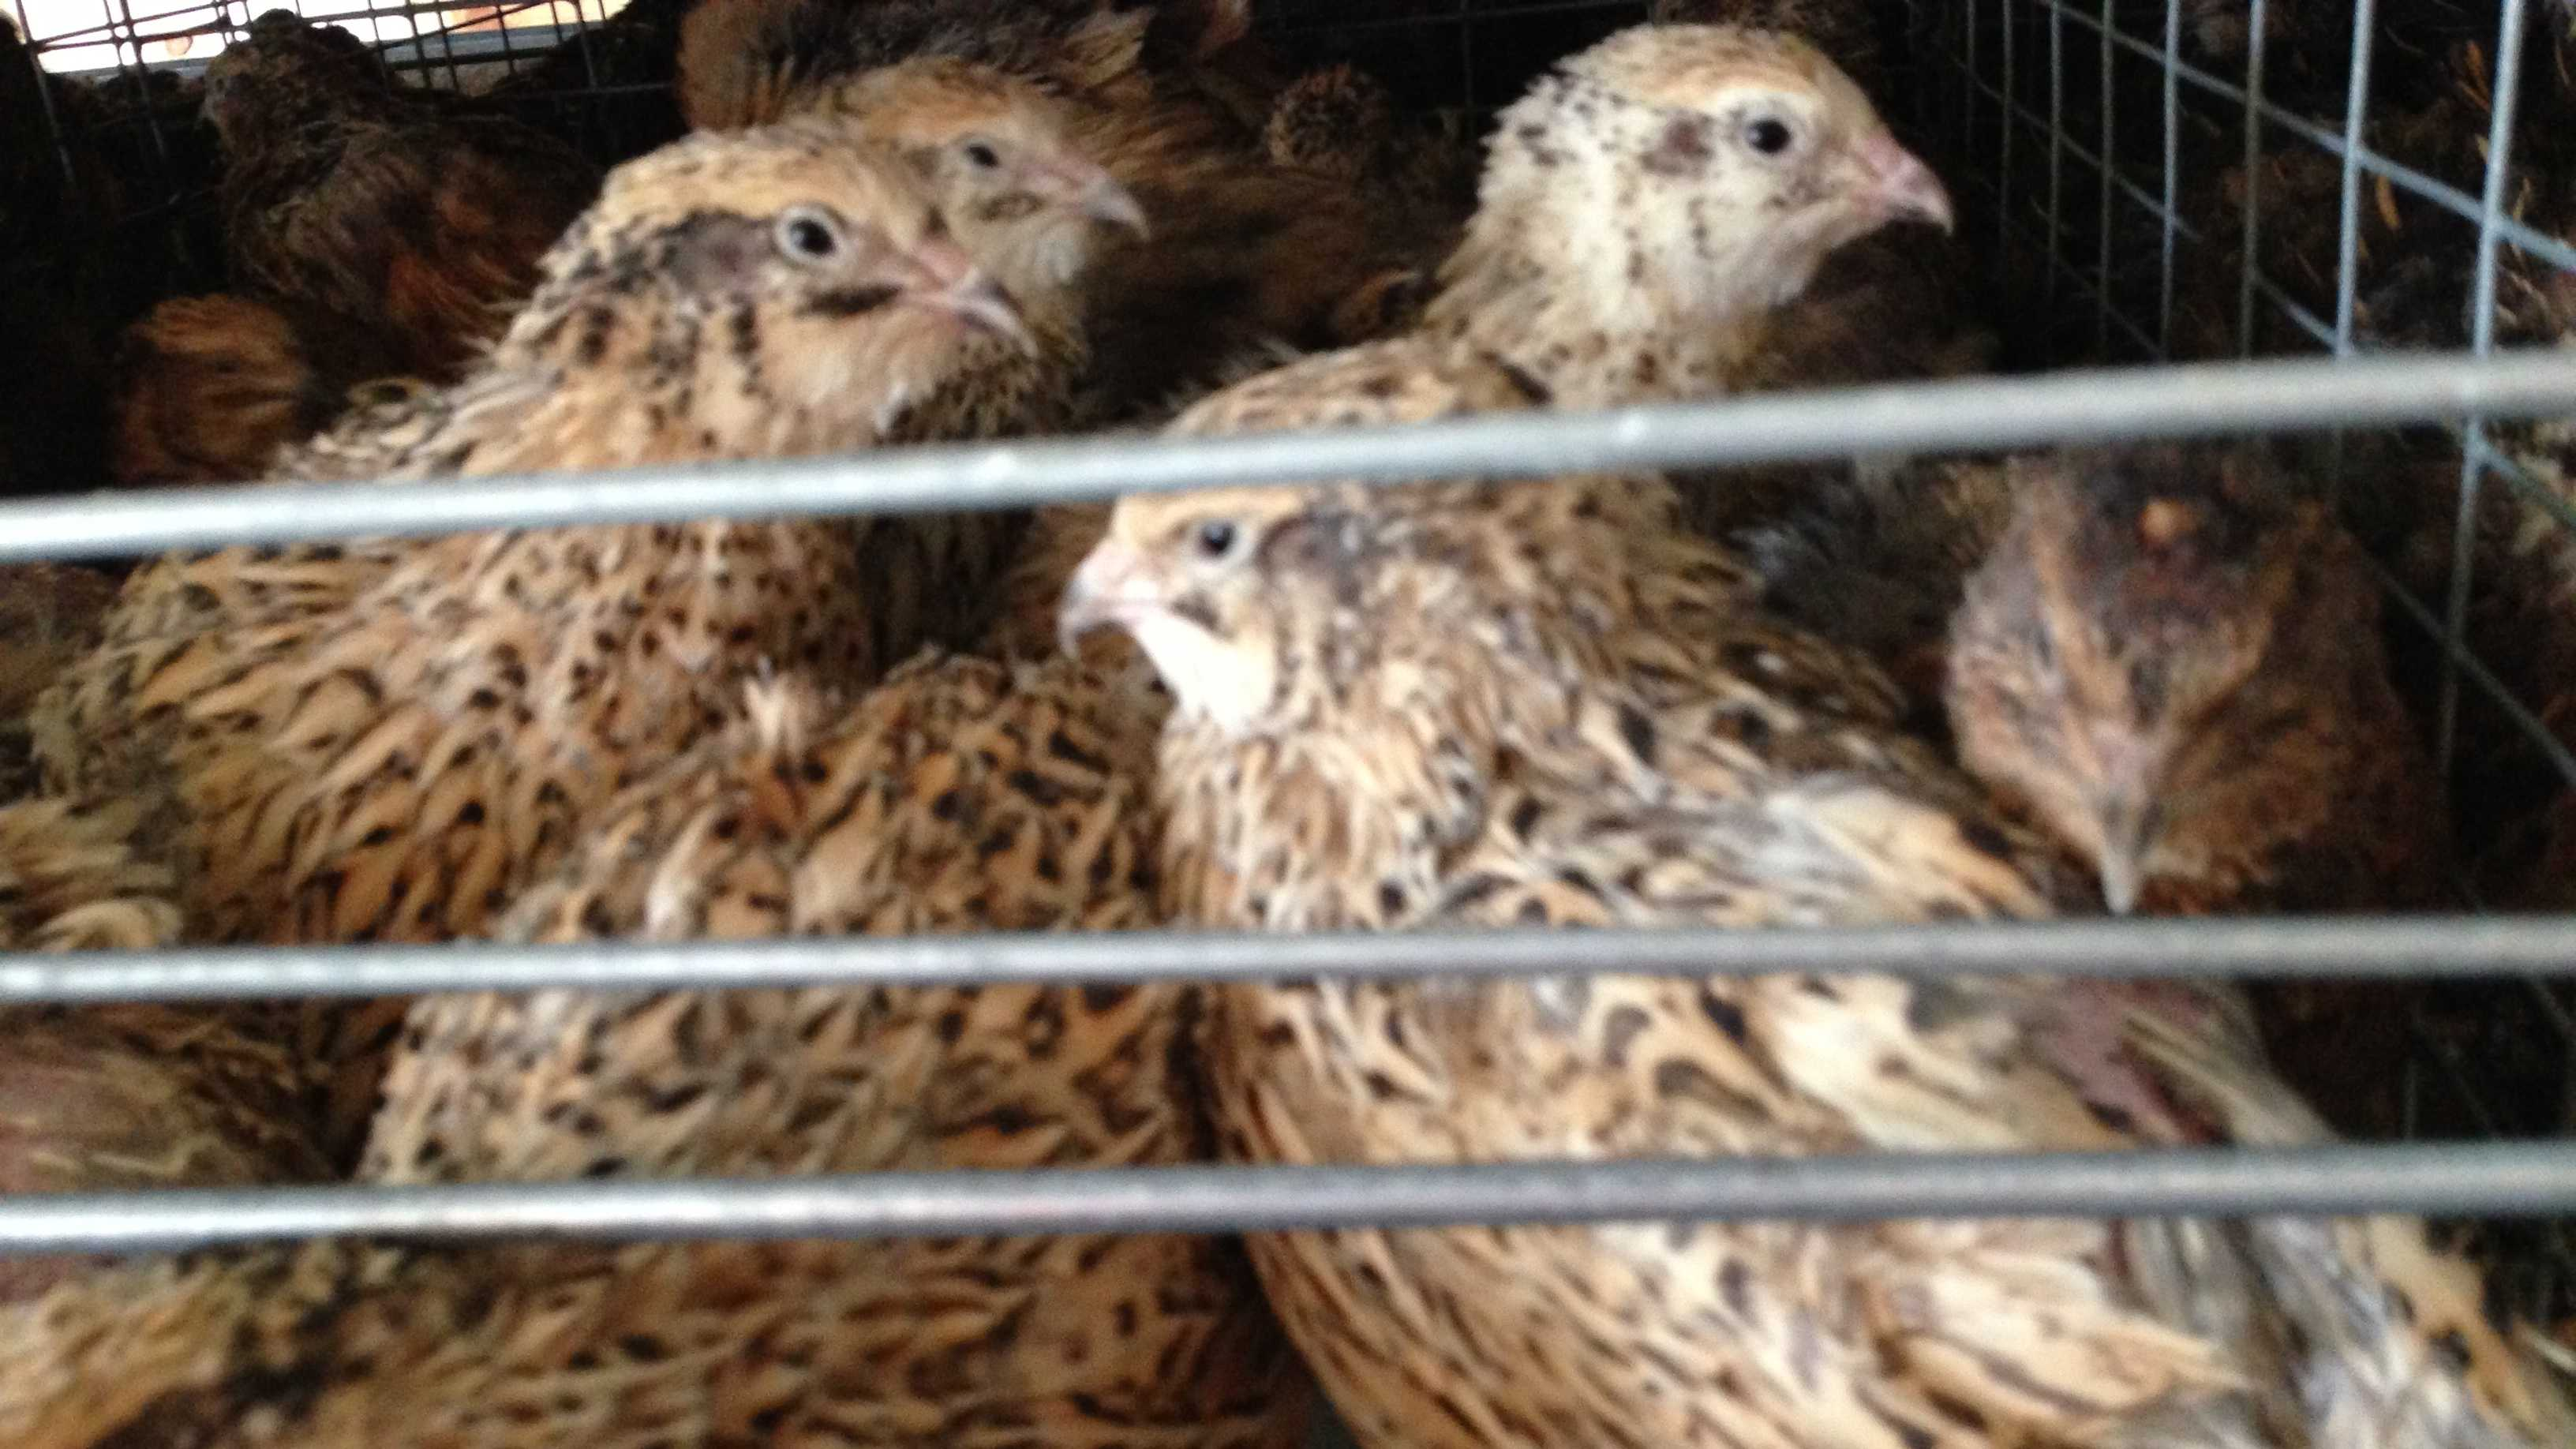 10-14 After fire killed 21,000 birds, Vt. poultry farm bouncing back - img 1